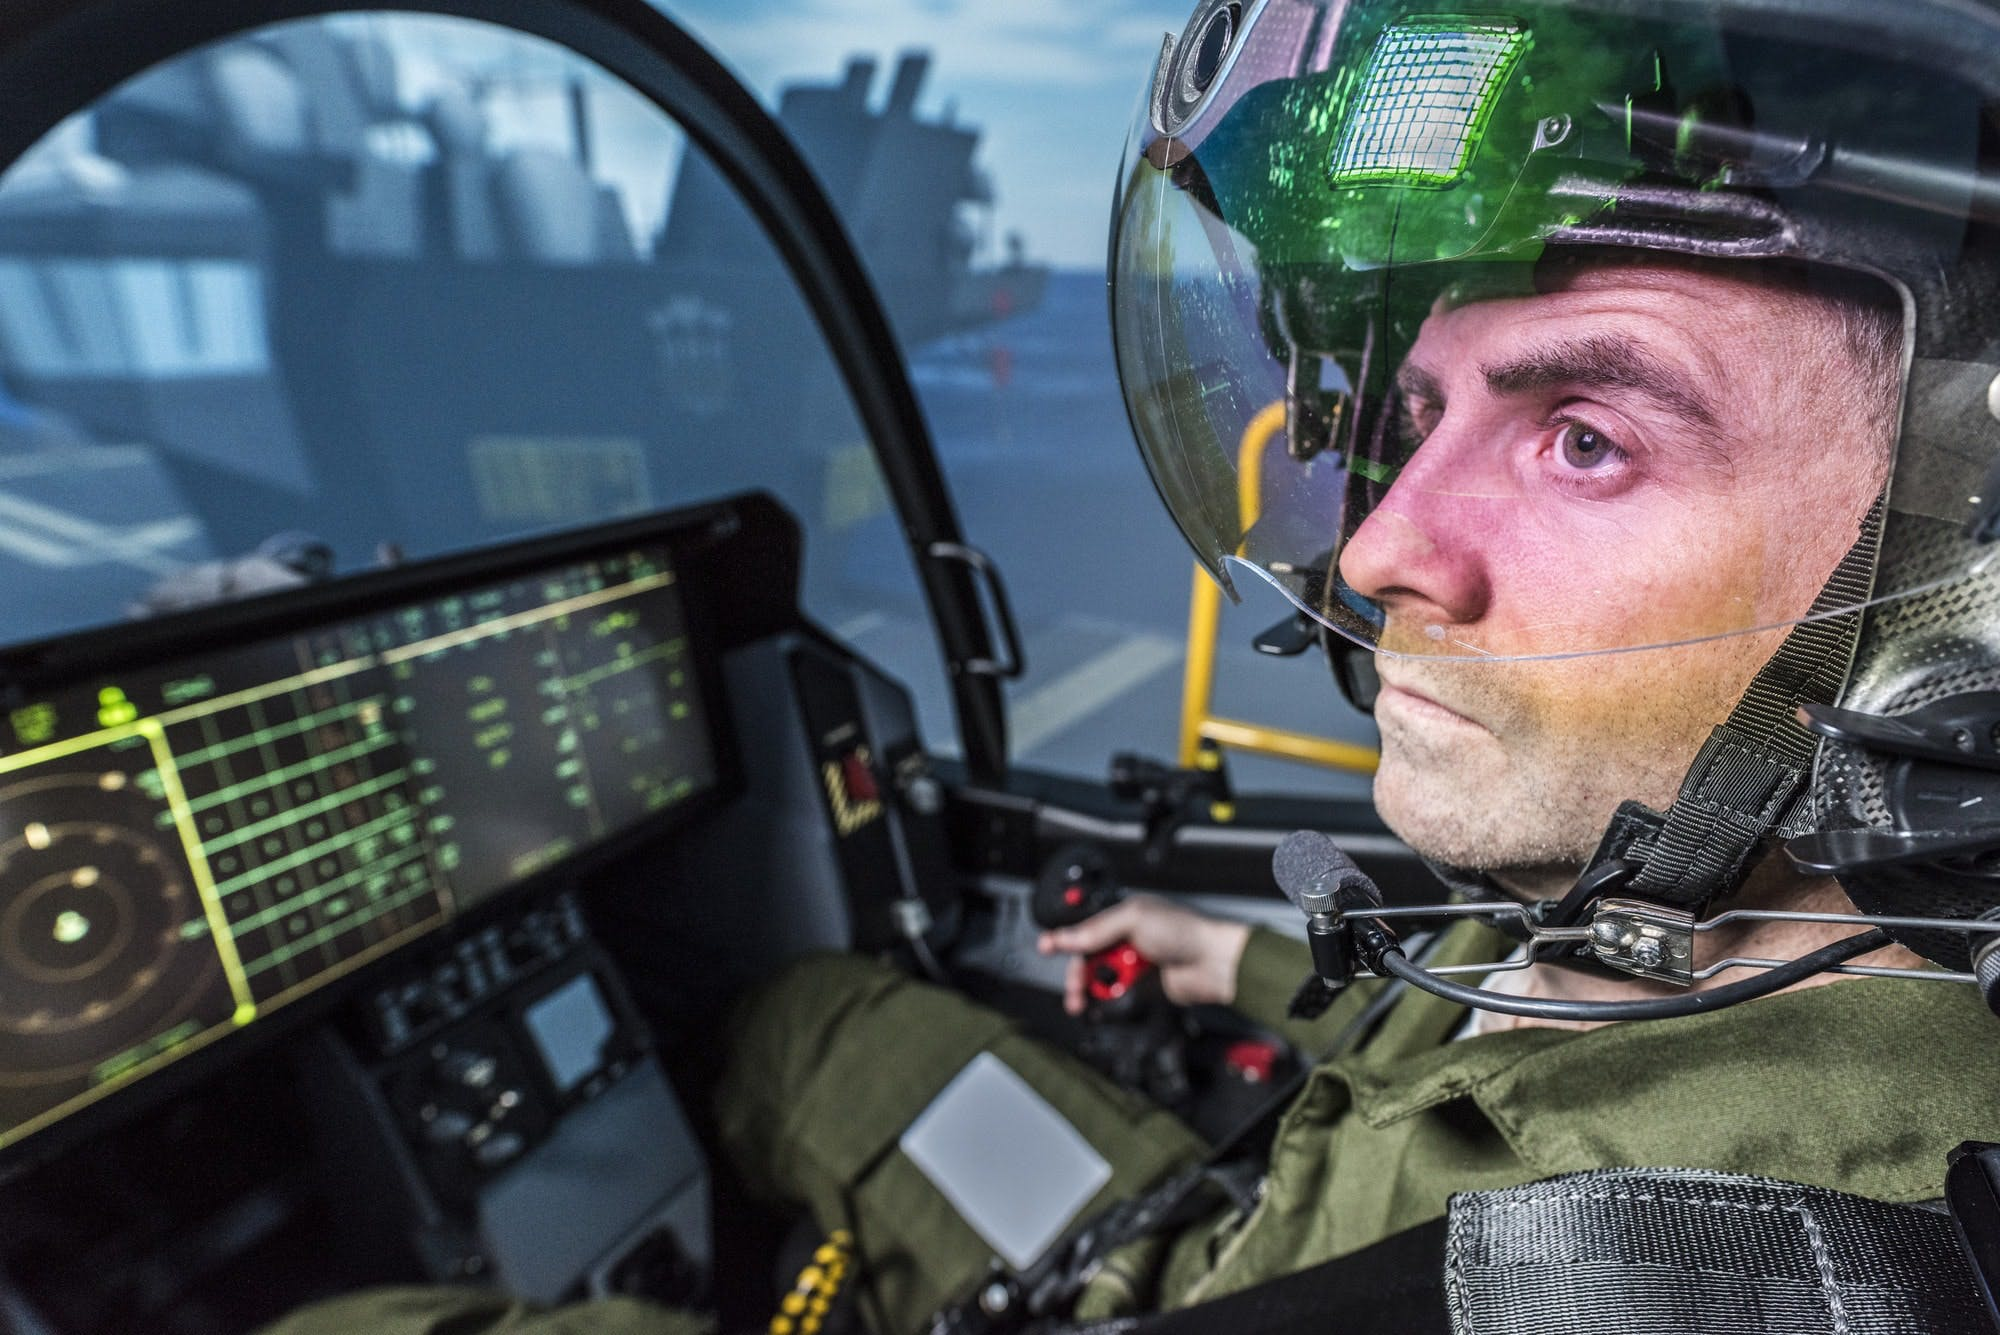 Royal Navy pilot hails 'unique simulator' supporting first